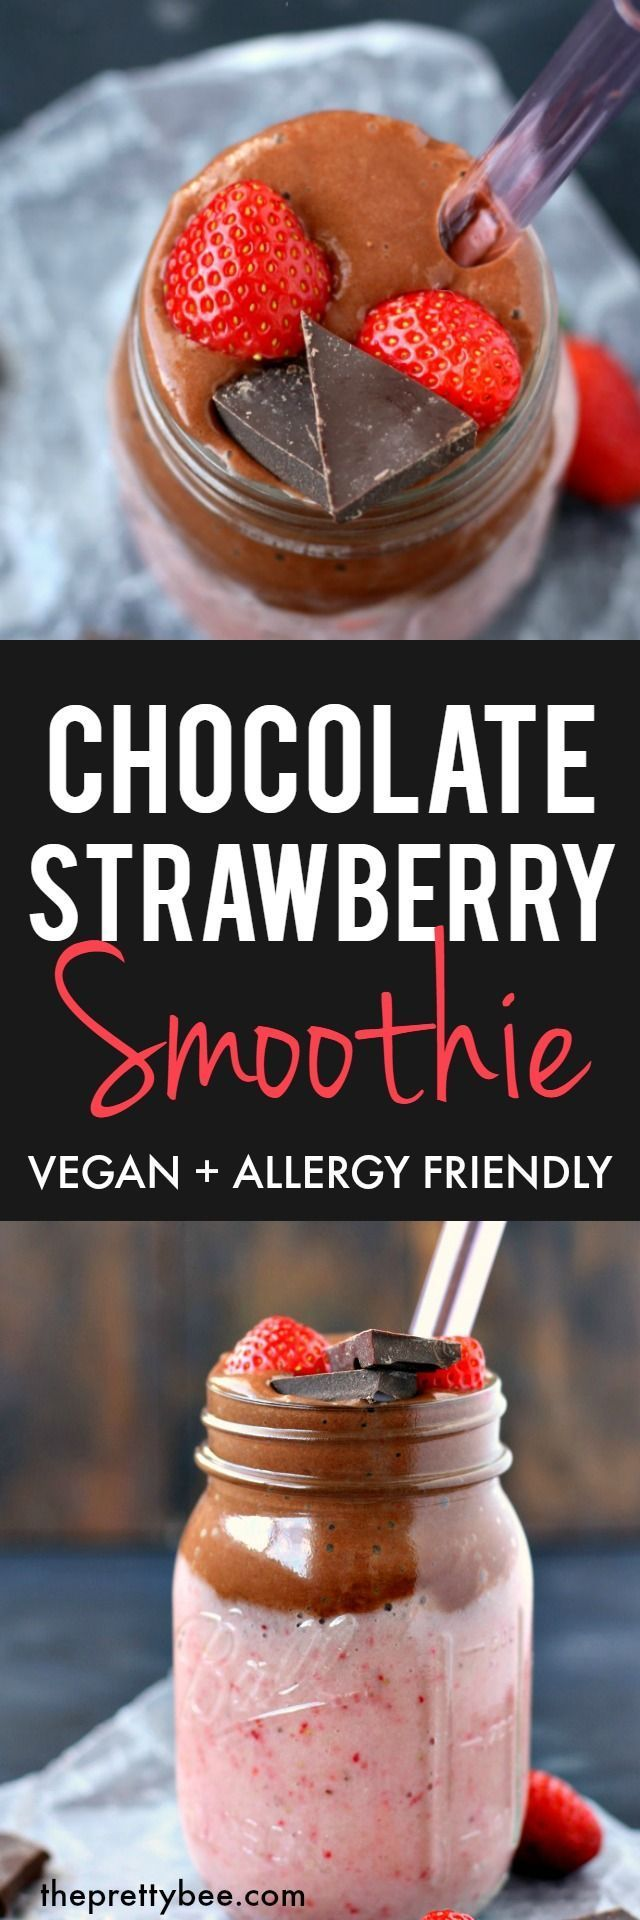 This chocolate strawberry smoothie is dairy free, vegan, and a healthy sweet treat!